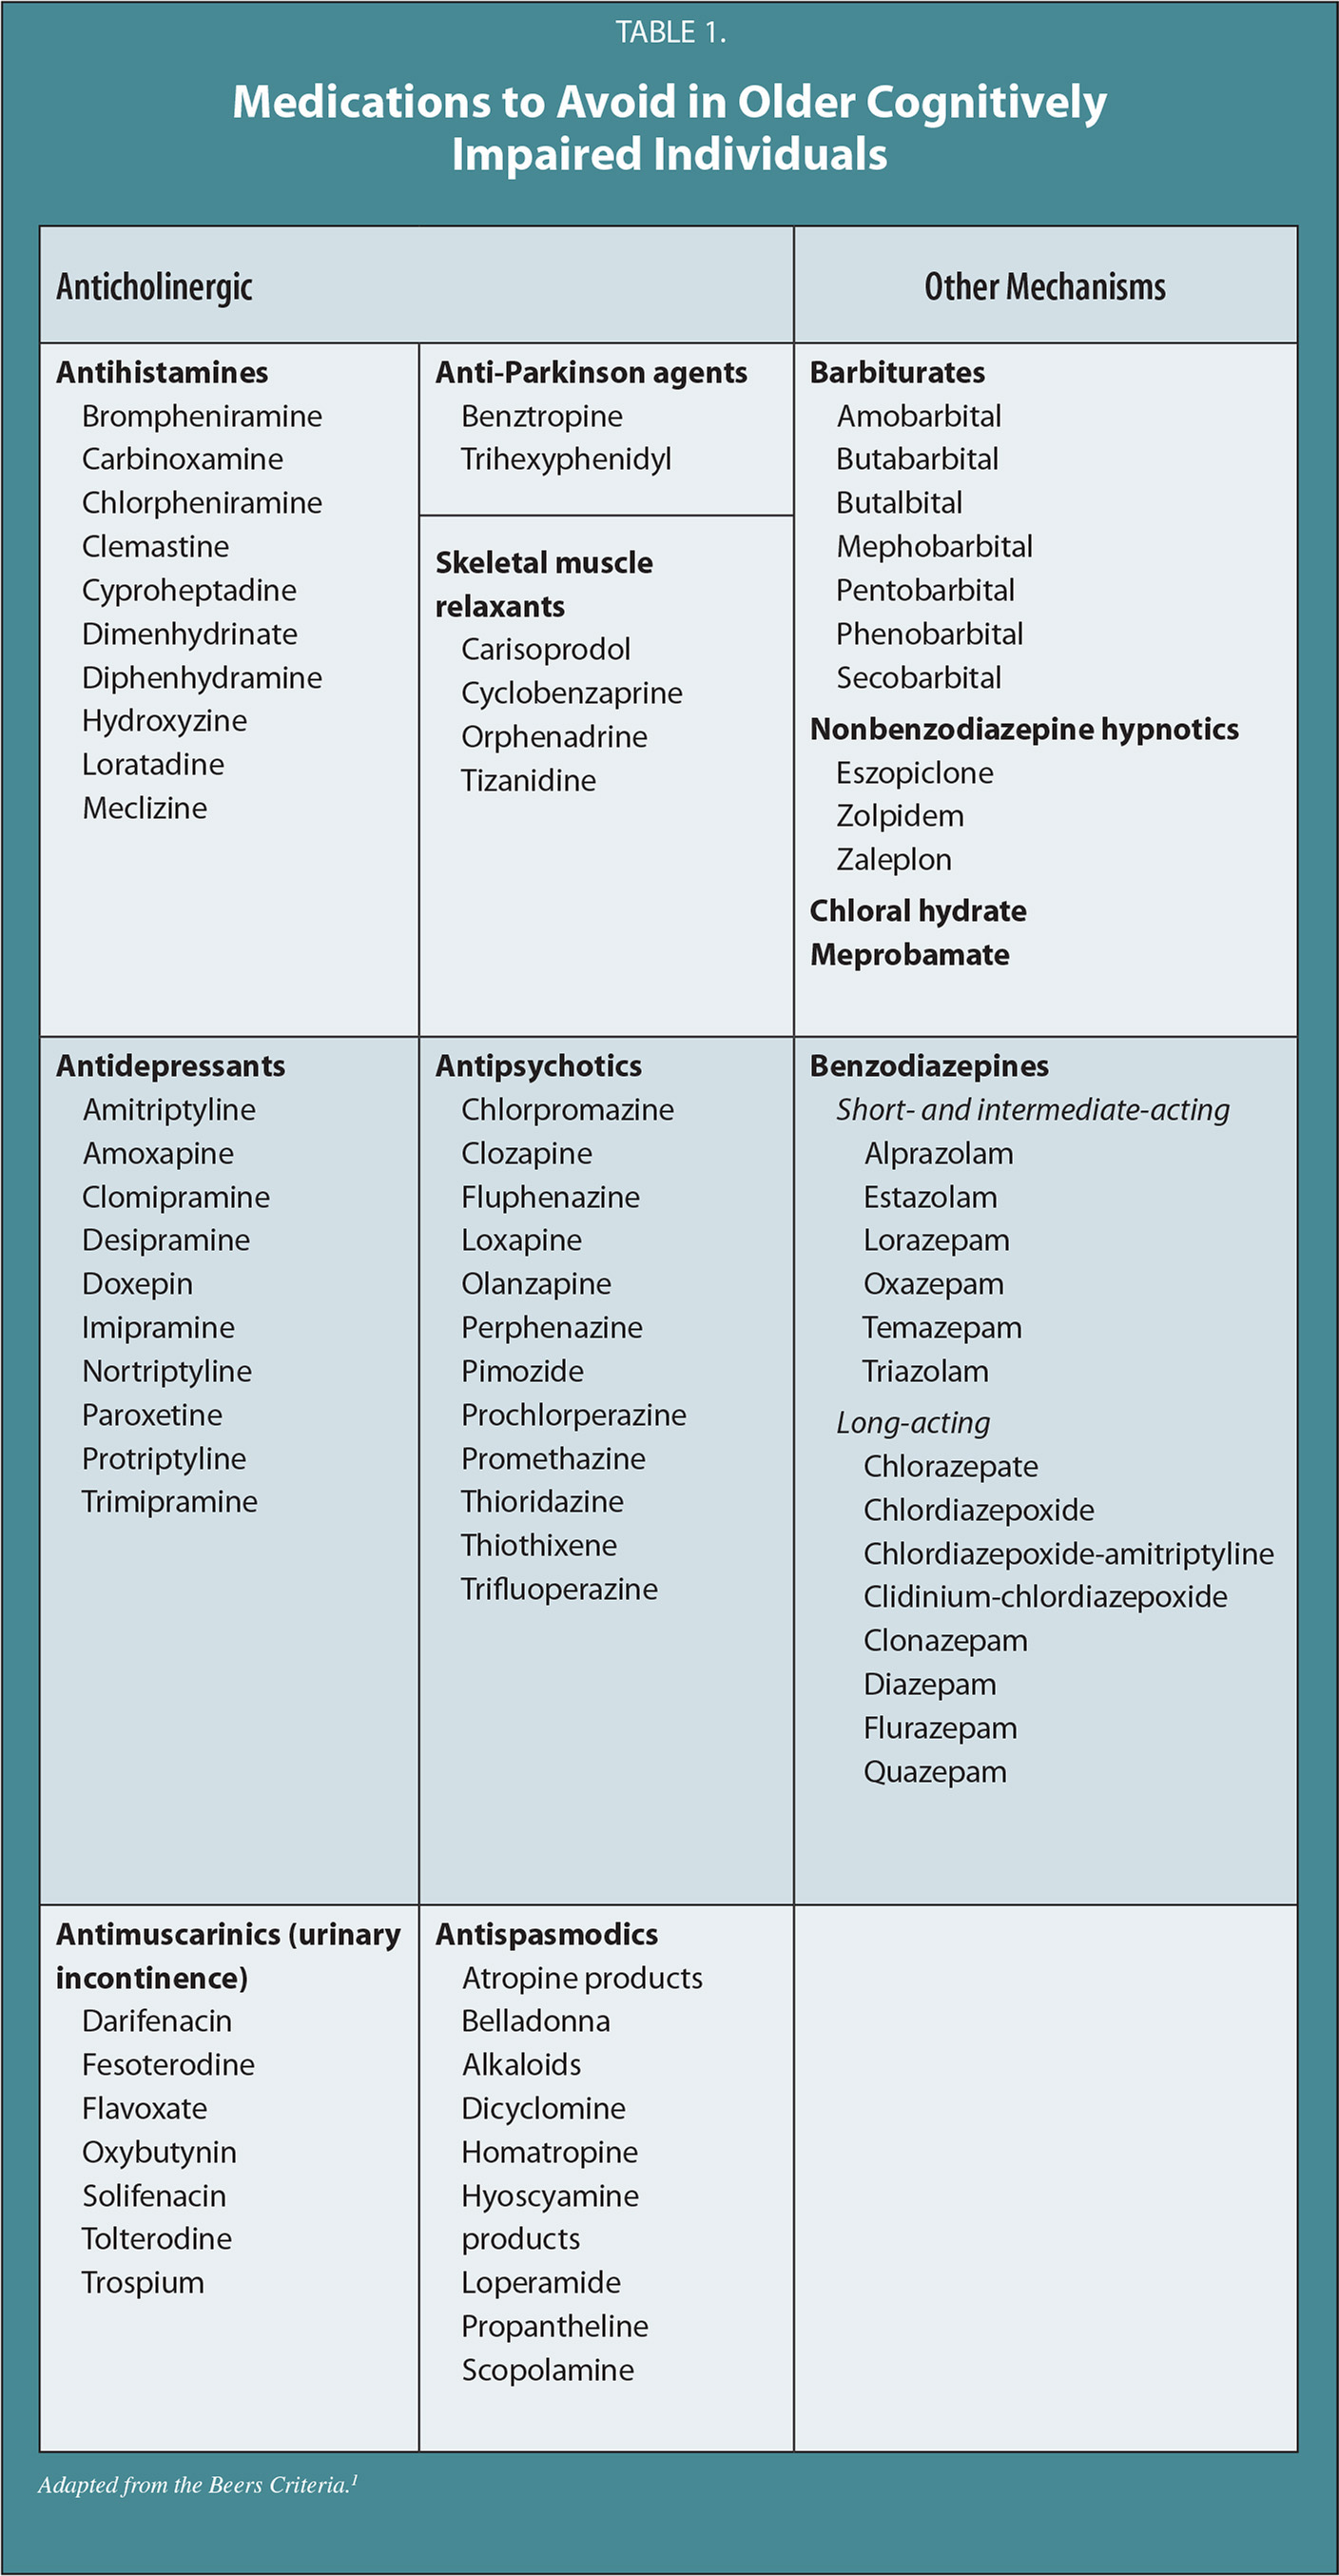 Medications to Avoid in Older Cognitively Impaired Individuals